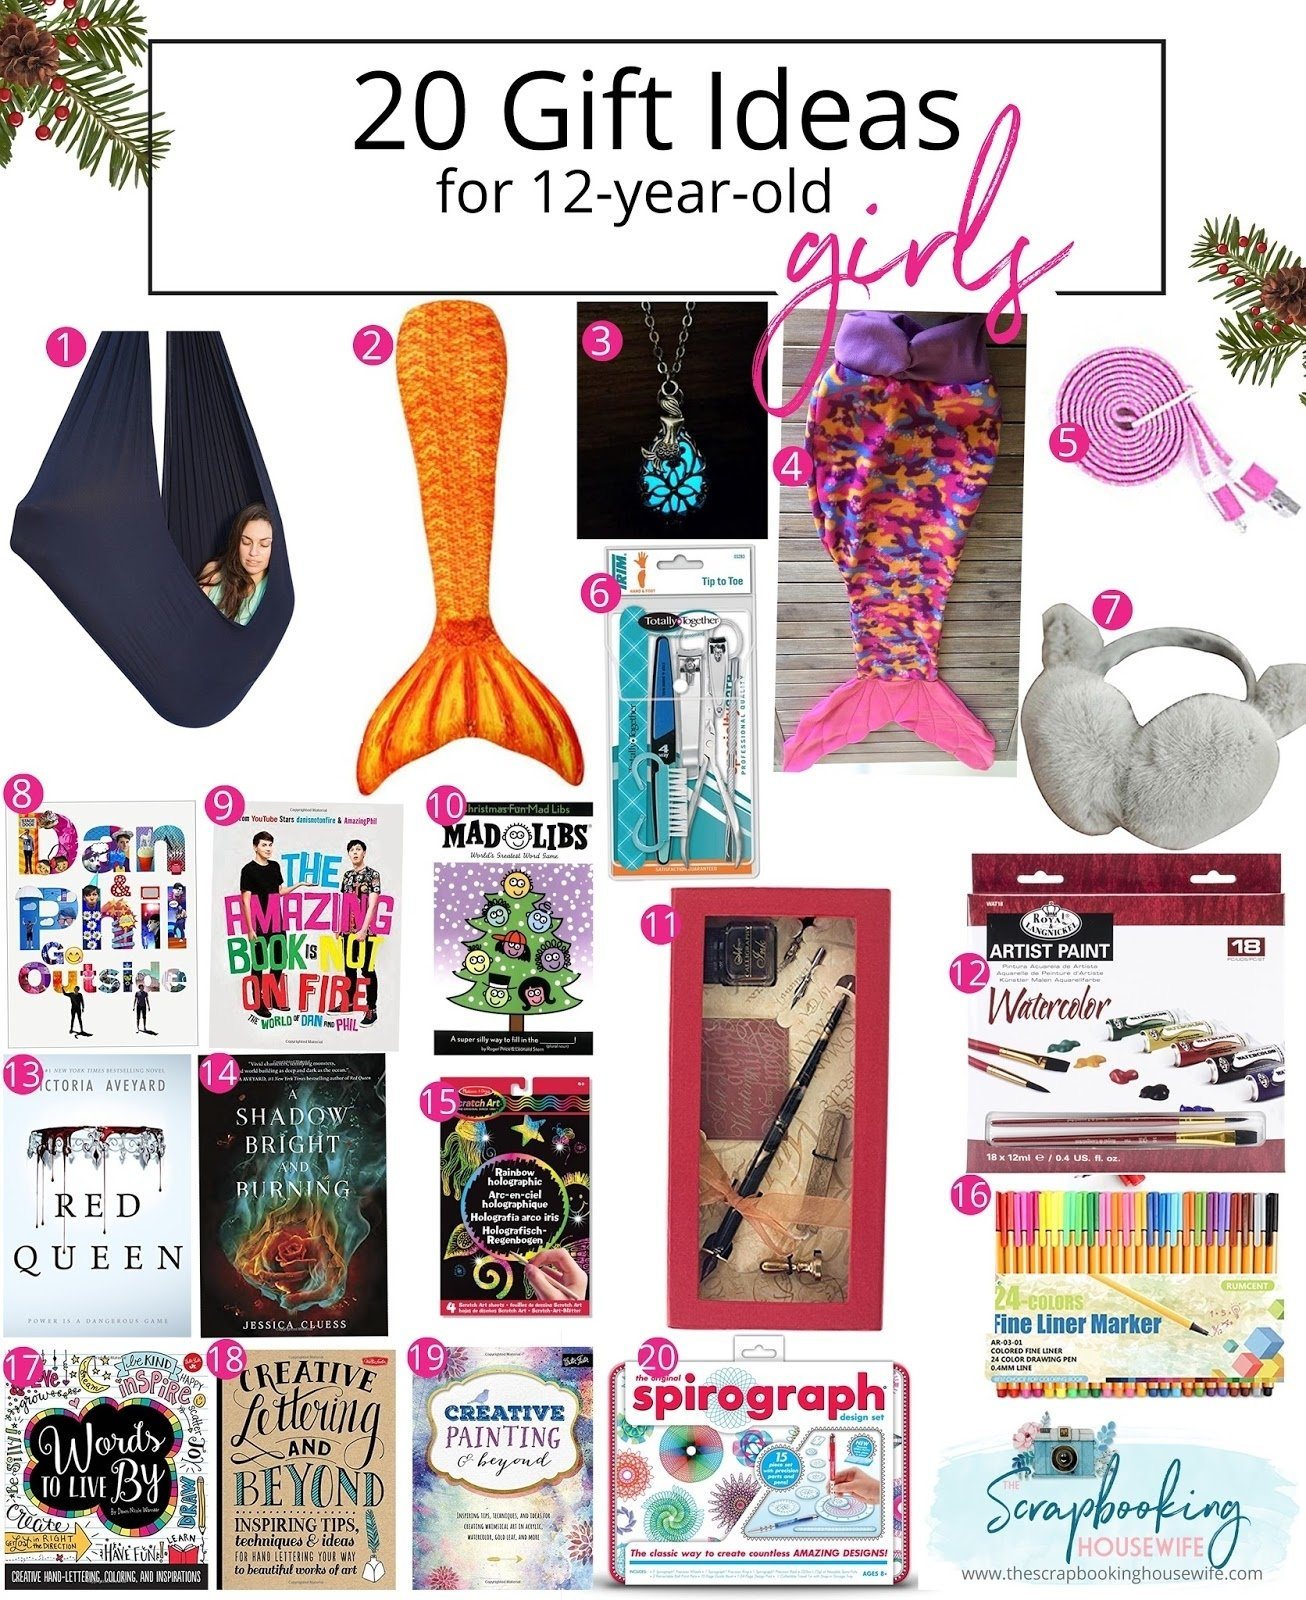 10 Best Gift Ideas For 12 Year Olds ellabella designs 20 gift ideas for 12 year old tween girls 9 2020